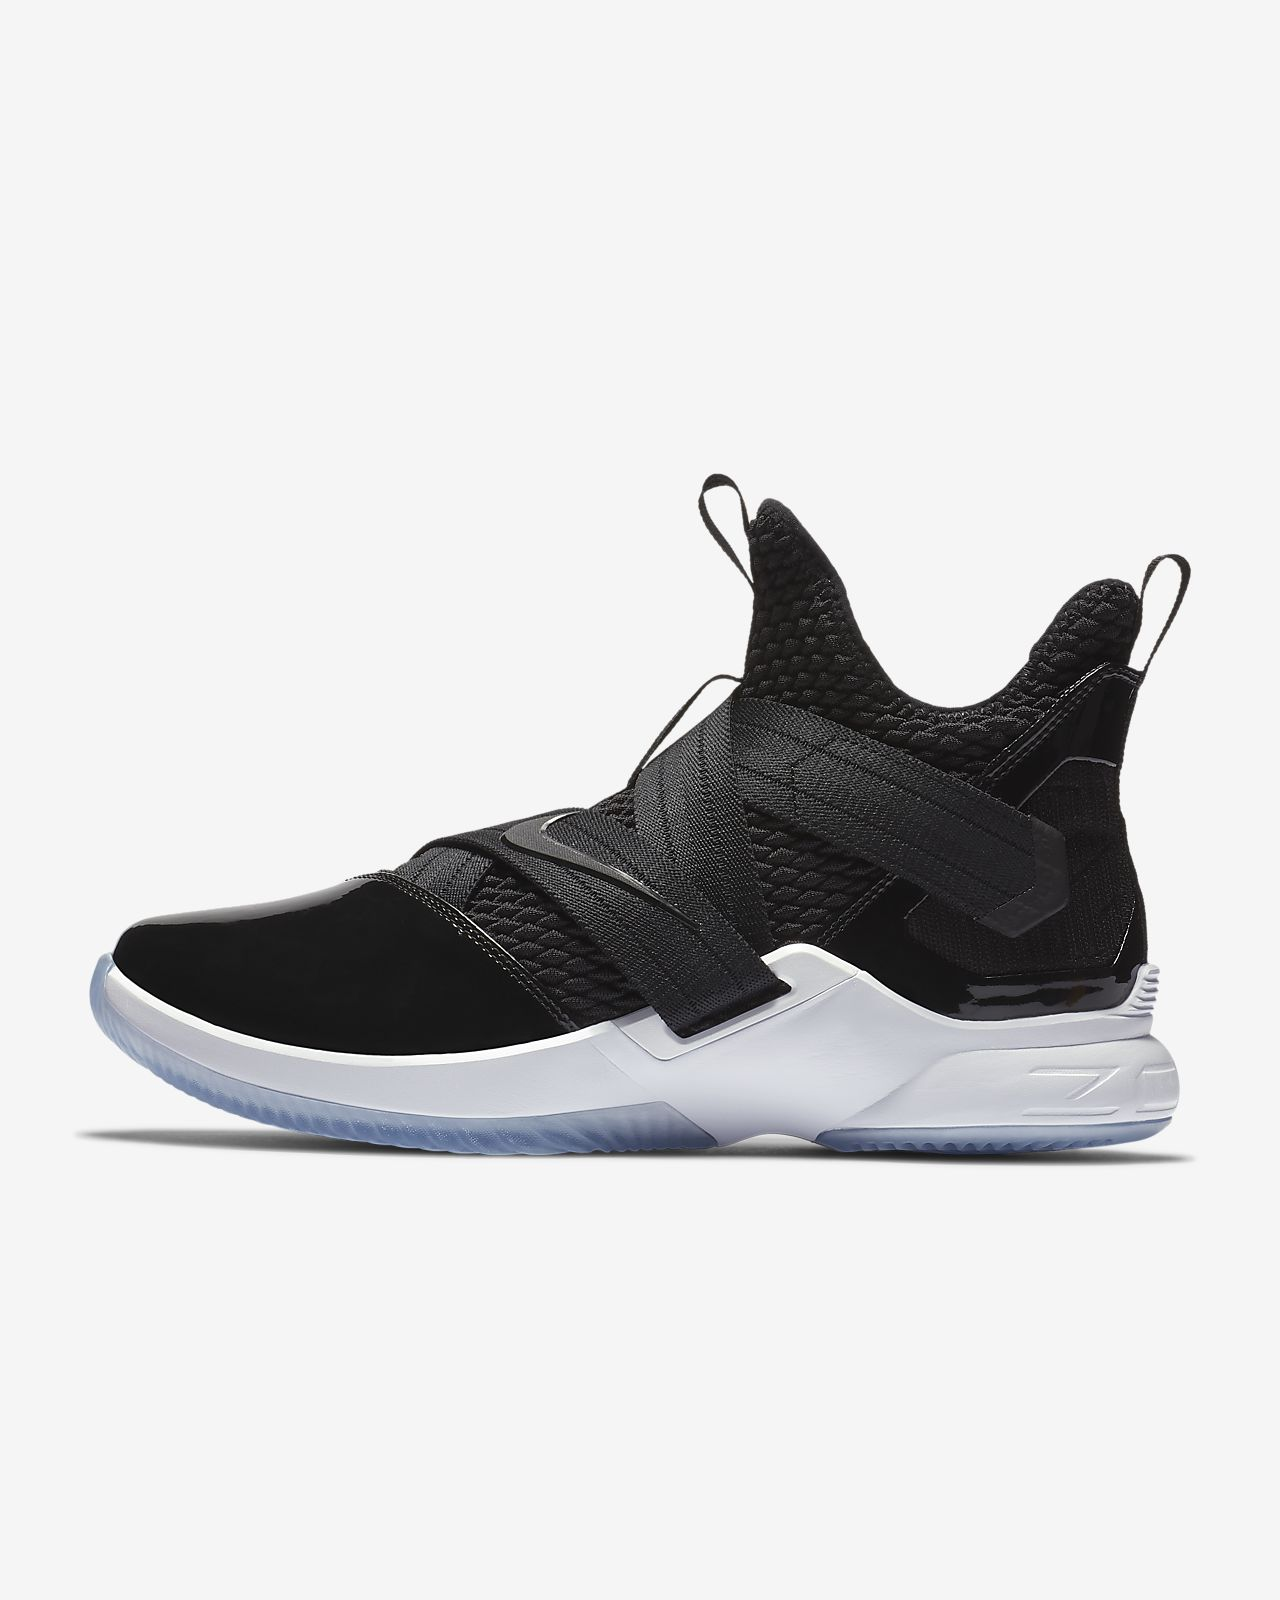 cbd37fb79825 LeBron Soldier 12 SFG Basketball Shoe. Nike.com